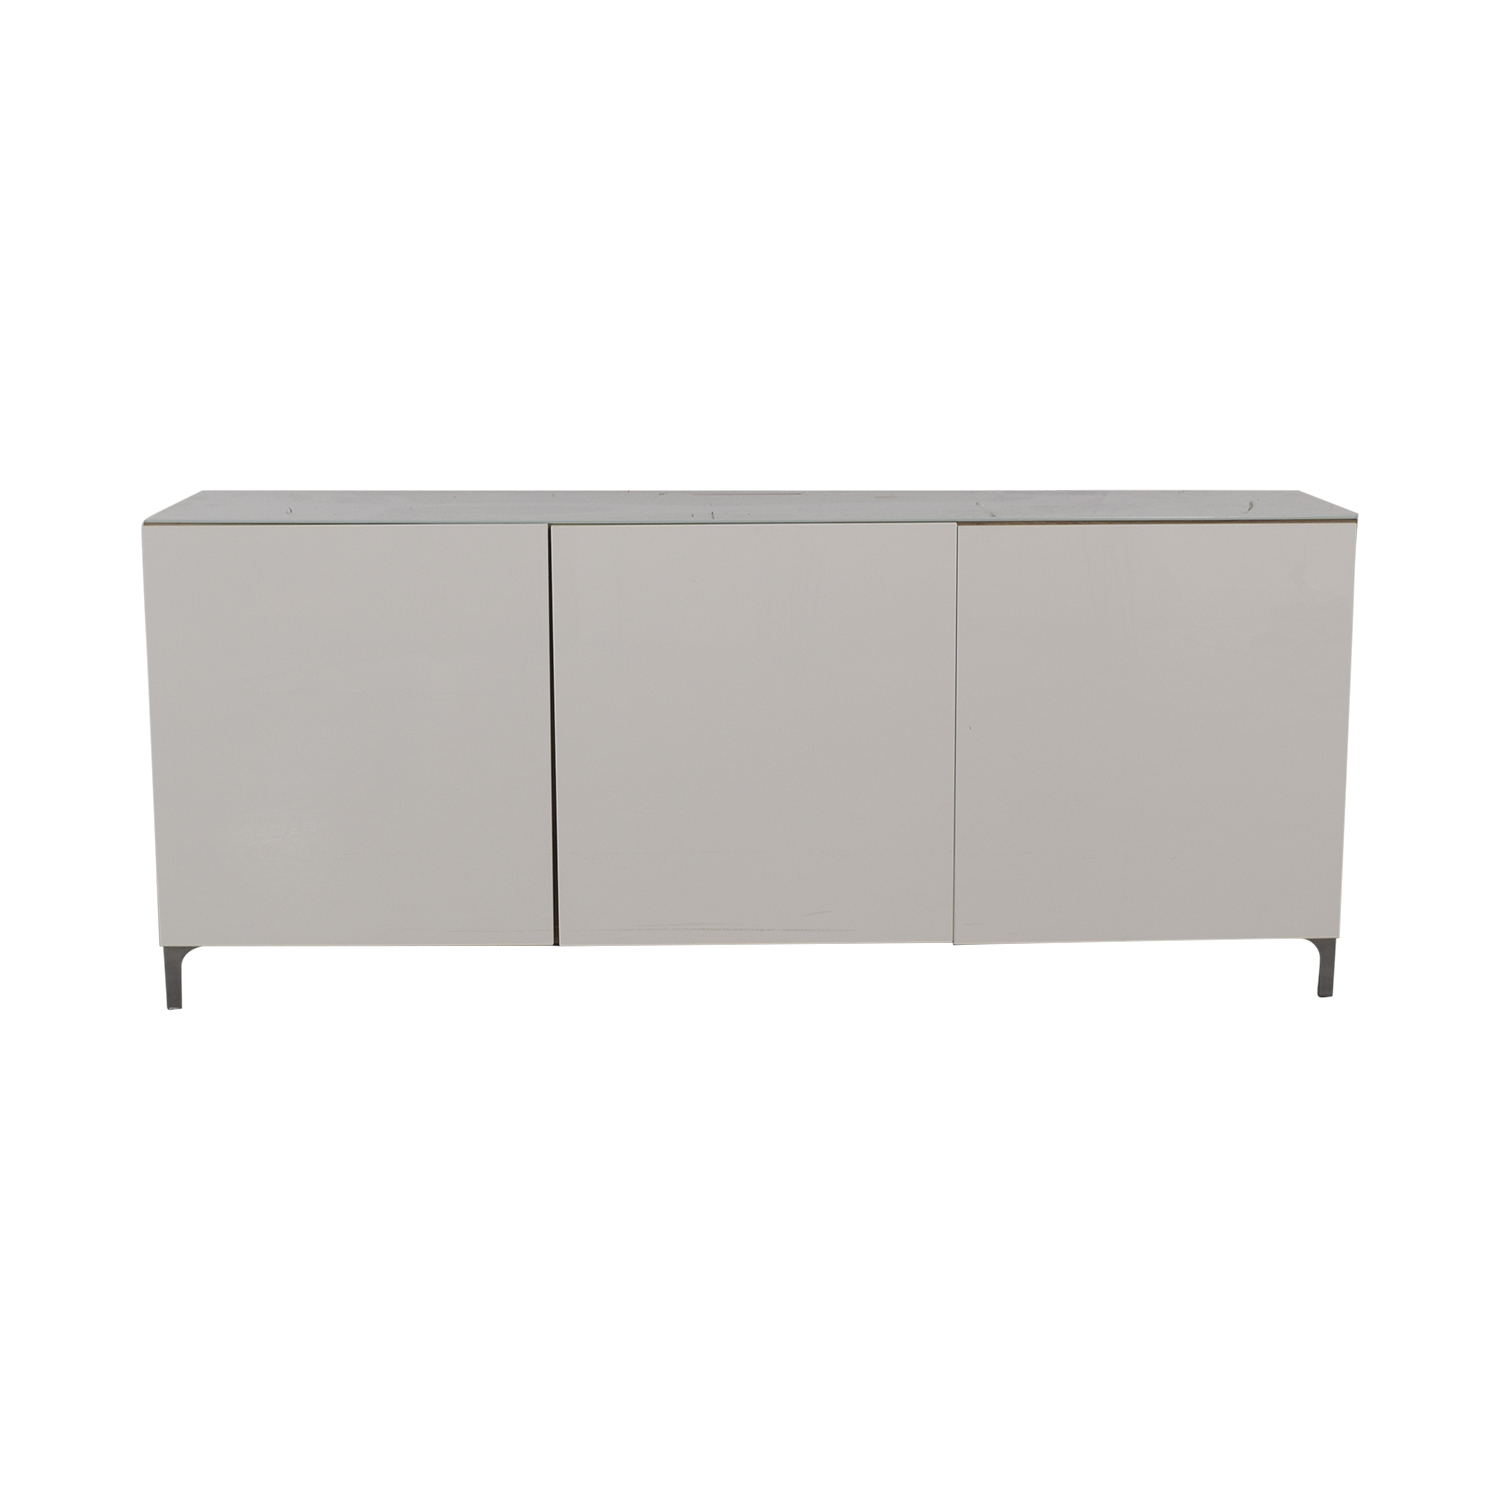 Ikea Tv Sideboard 70 Off Ikea Ikea Besta Tv Storage Unit Storage